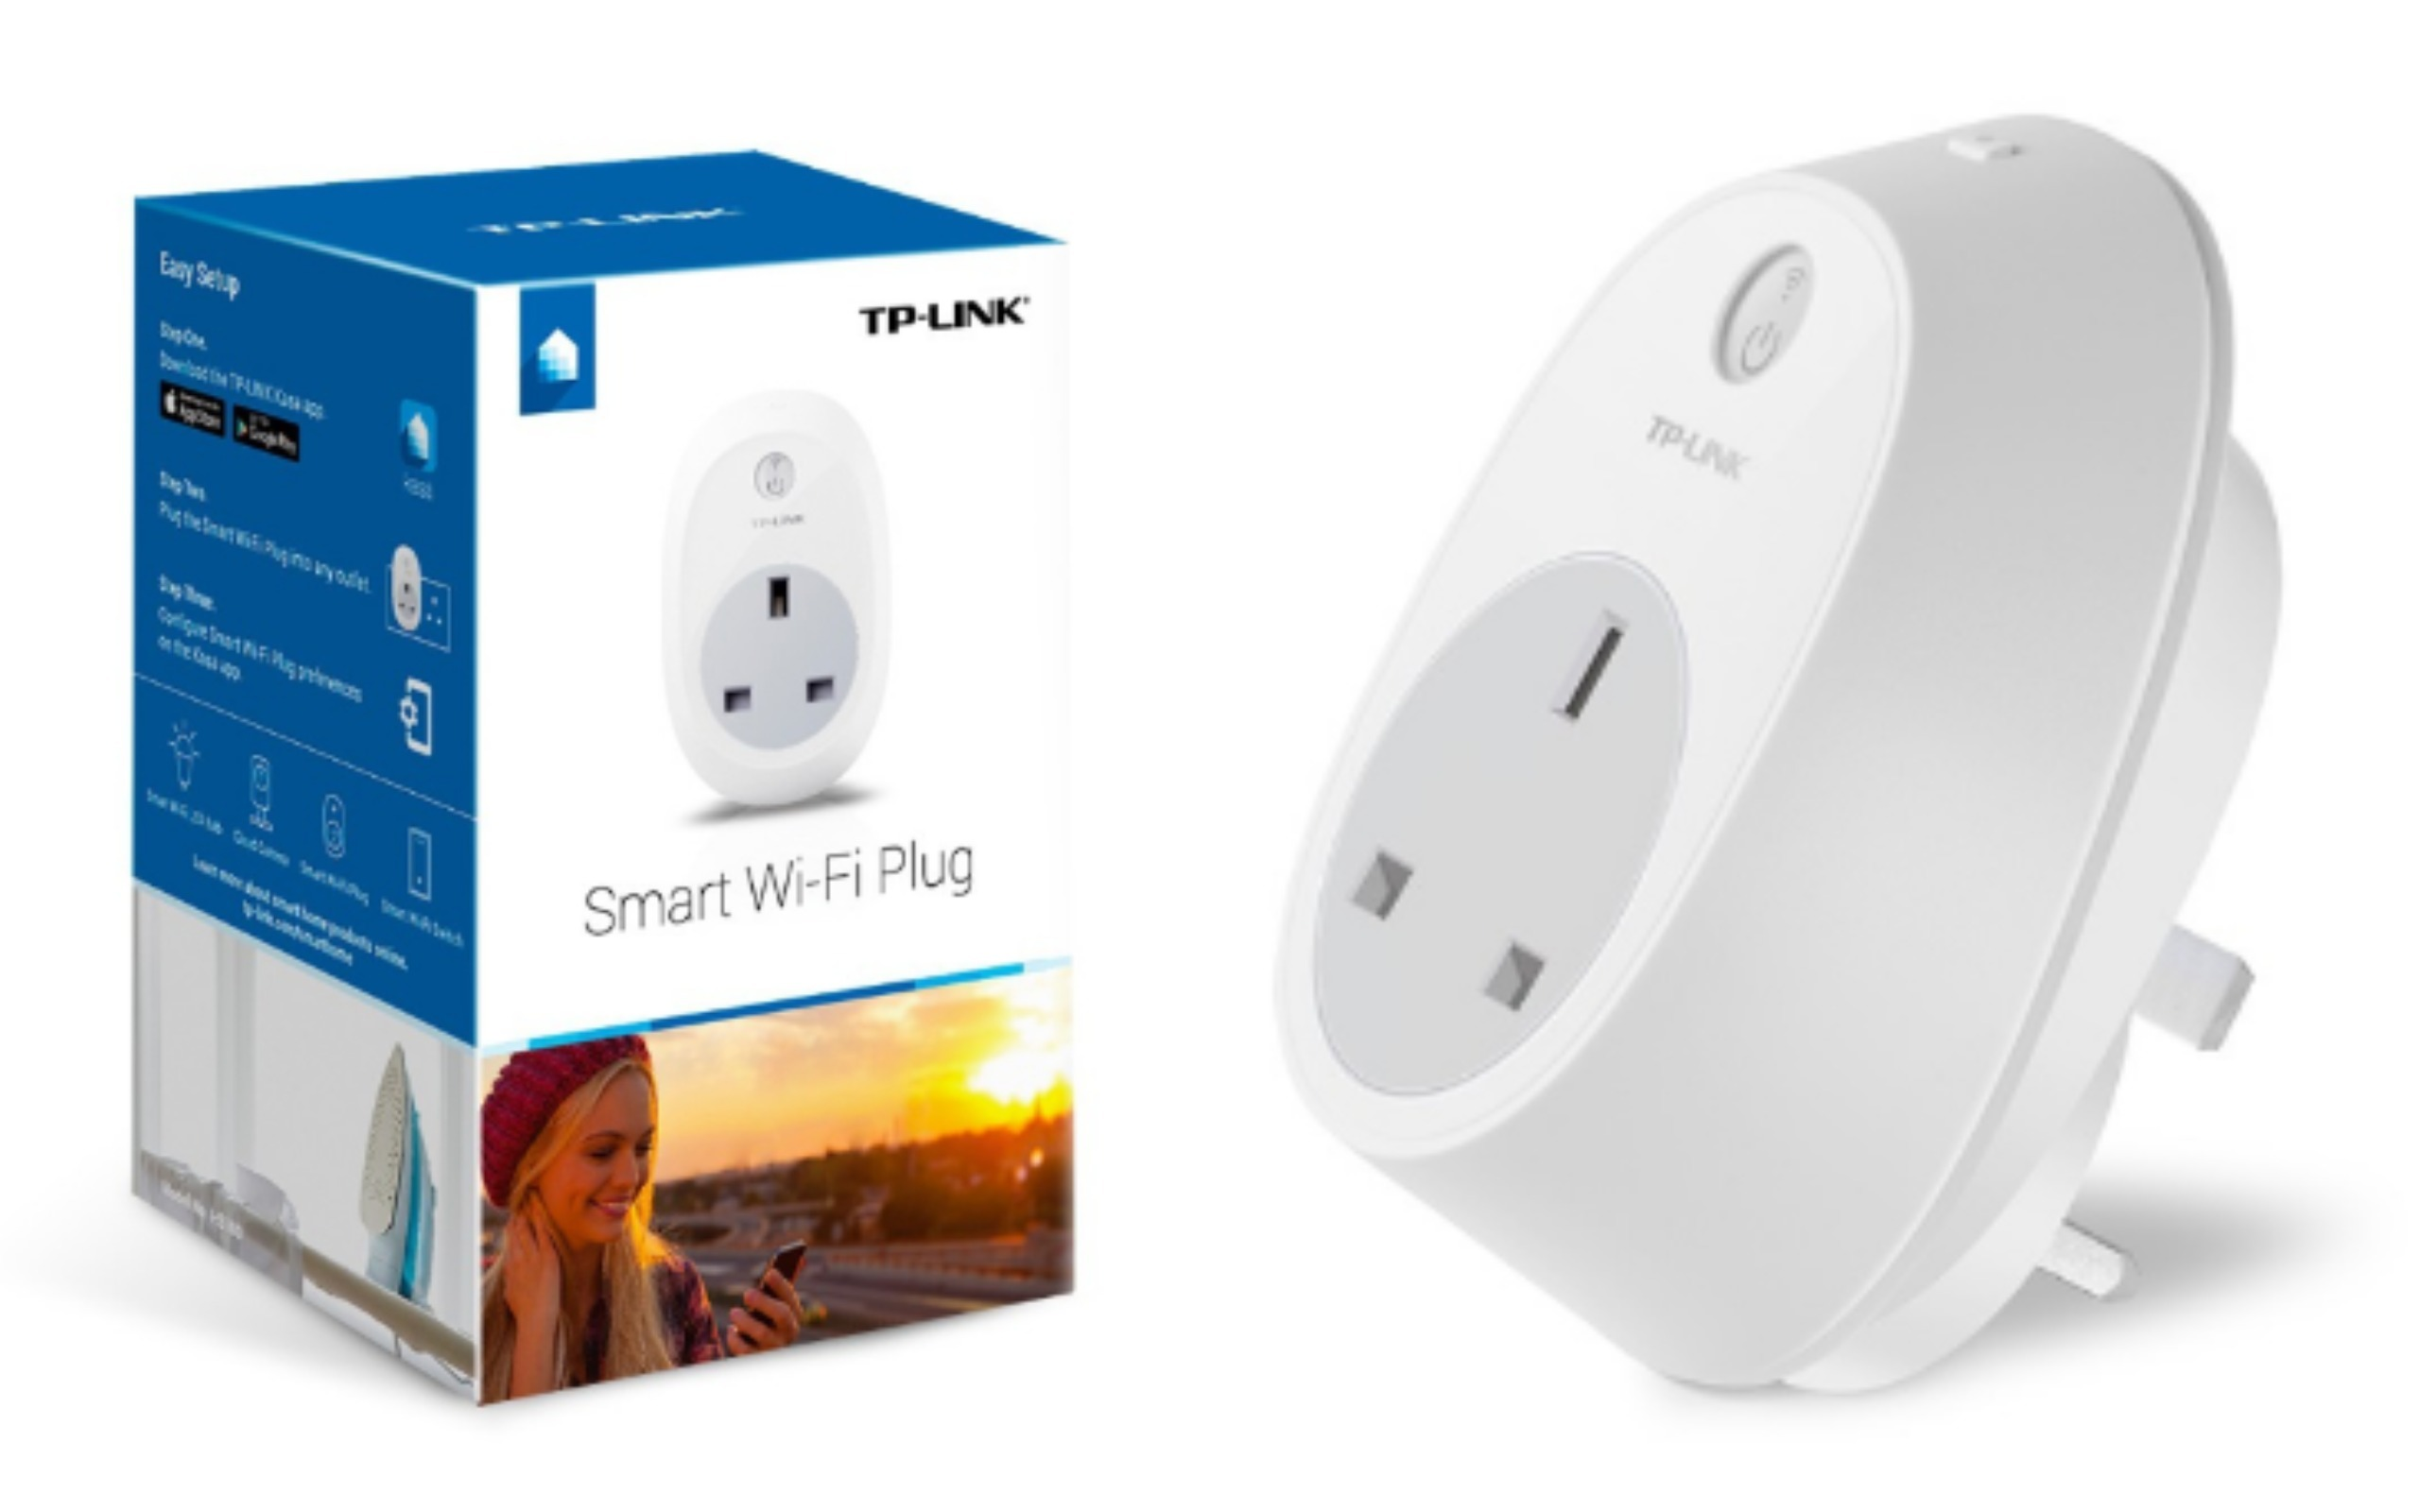 Smart Homes How To Spruce Up Your Pad With Nifty Gadgets 2 Way Switch Singapore Home Tp Link Plug